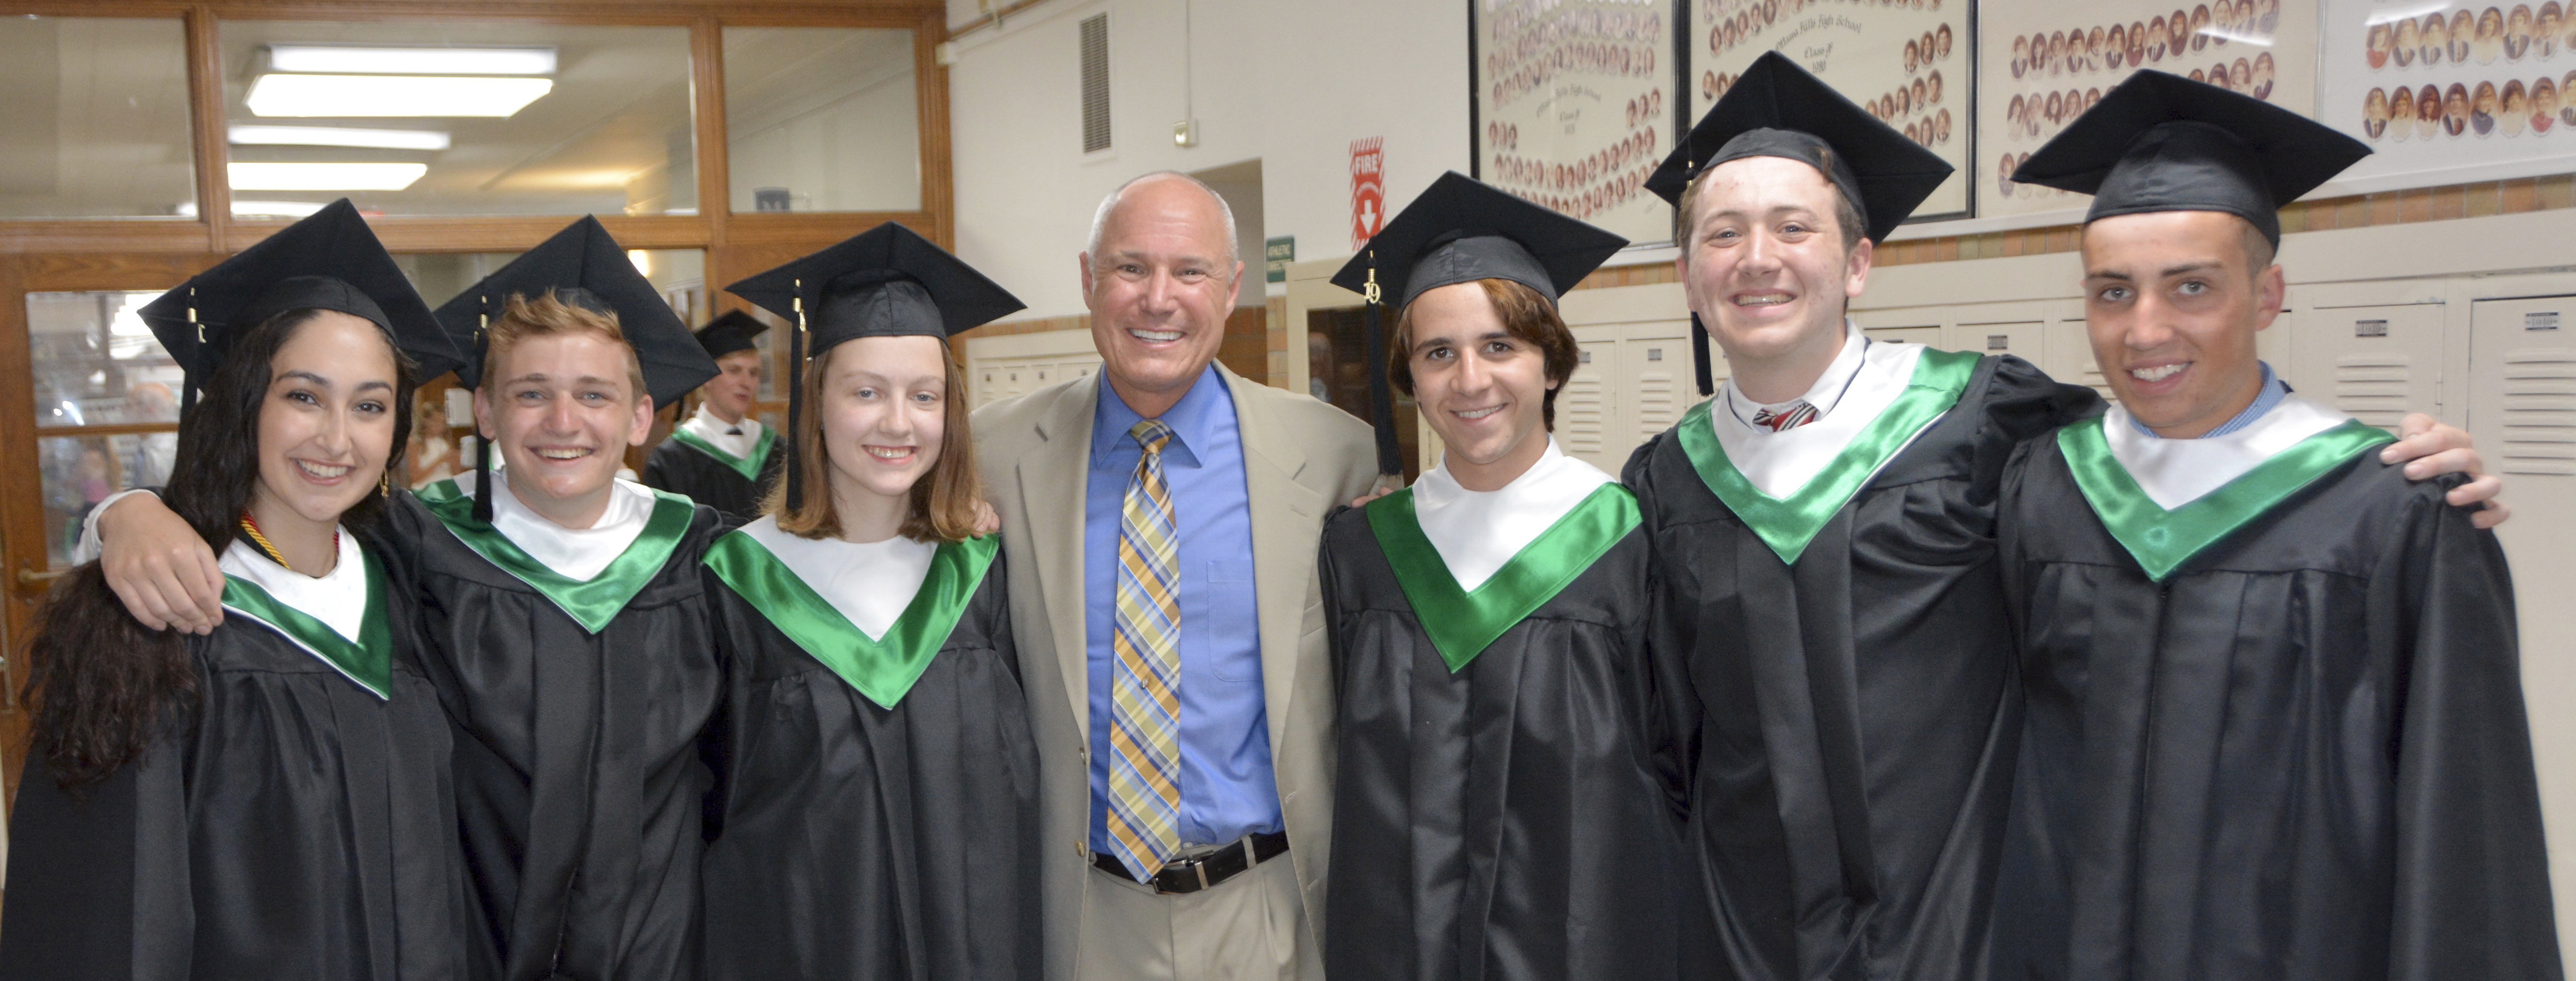 Dr. Miller with members of the class of 2019